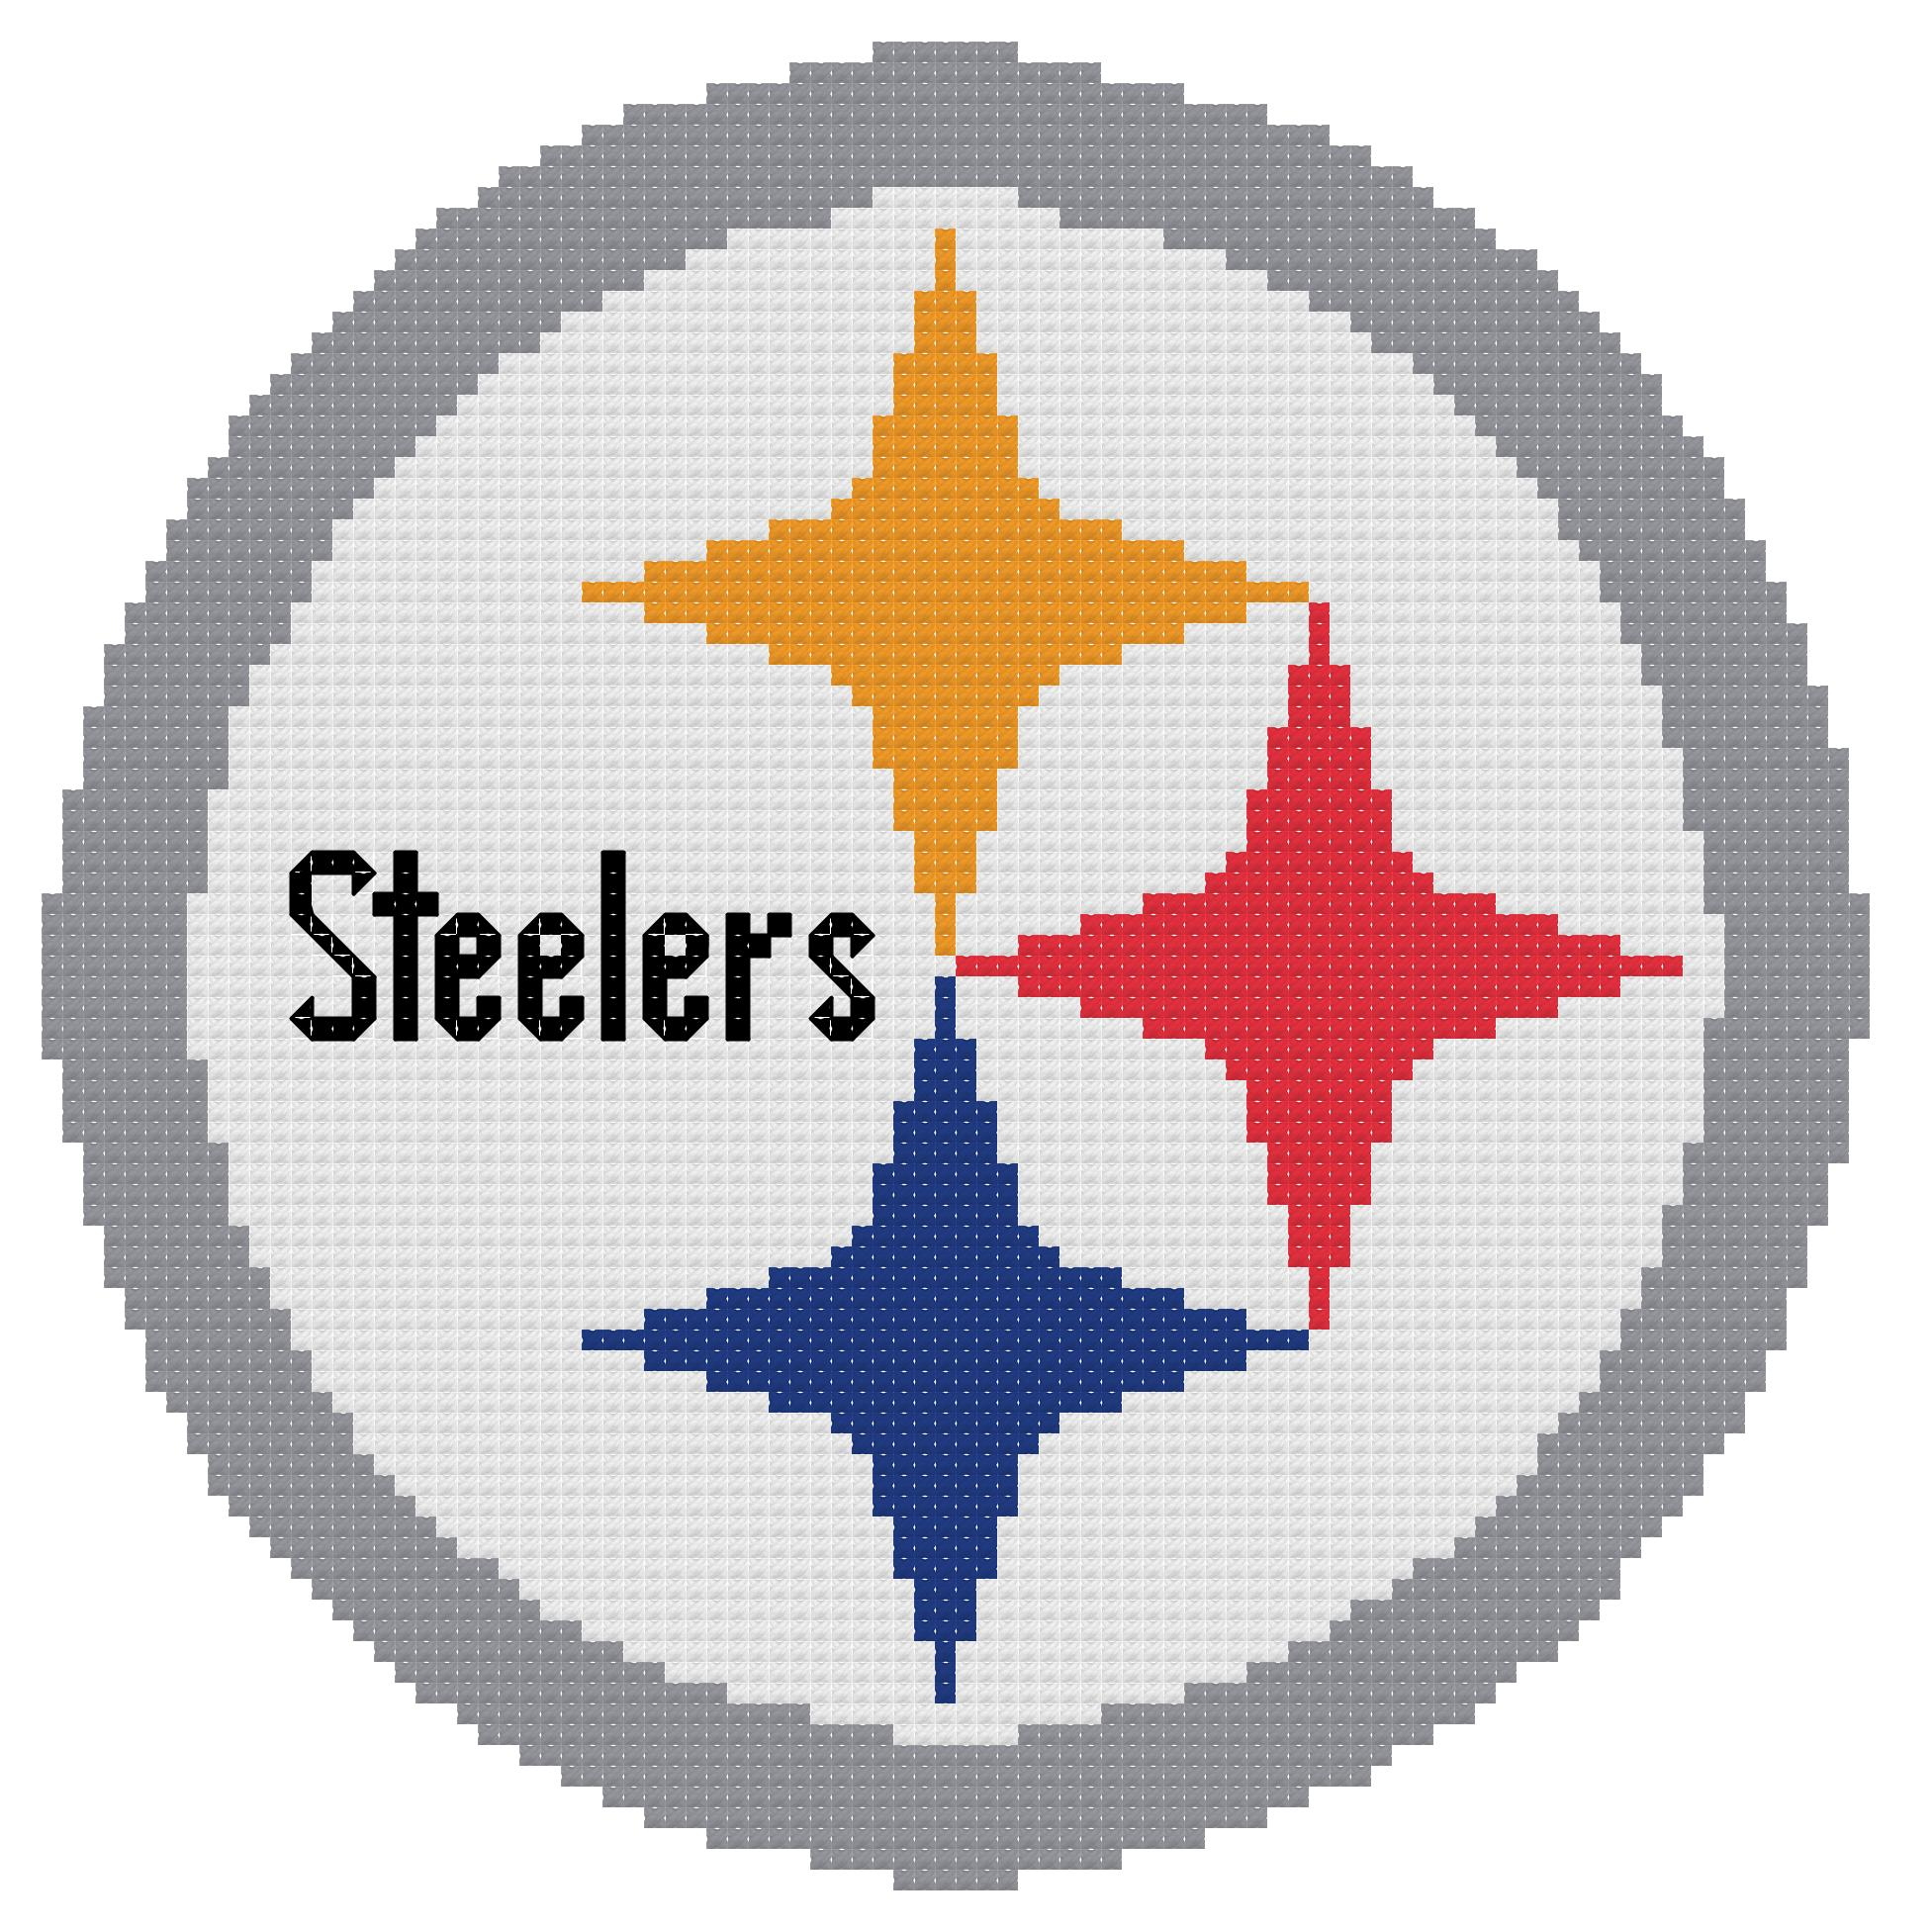 counted cross stitch pattern pittsburgh steelers logo the cross rh thecrossstitchguy com pittsburgh steelers logo pics